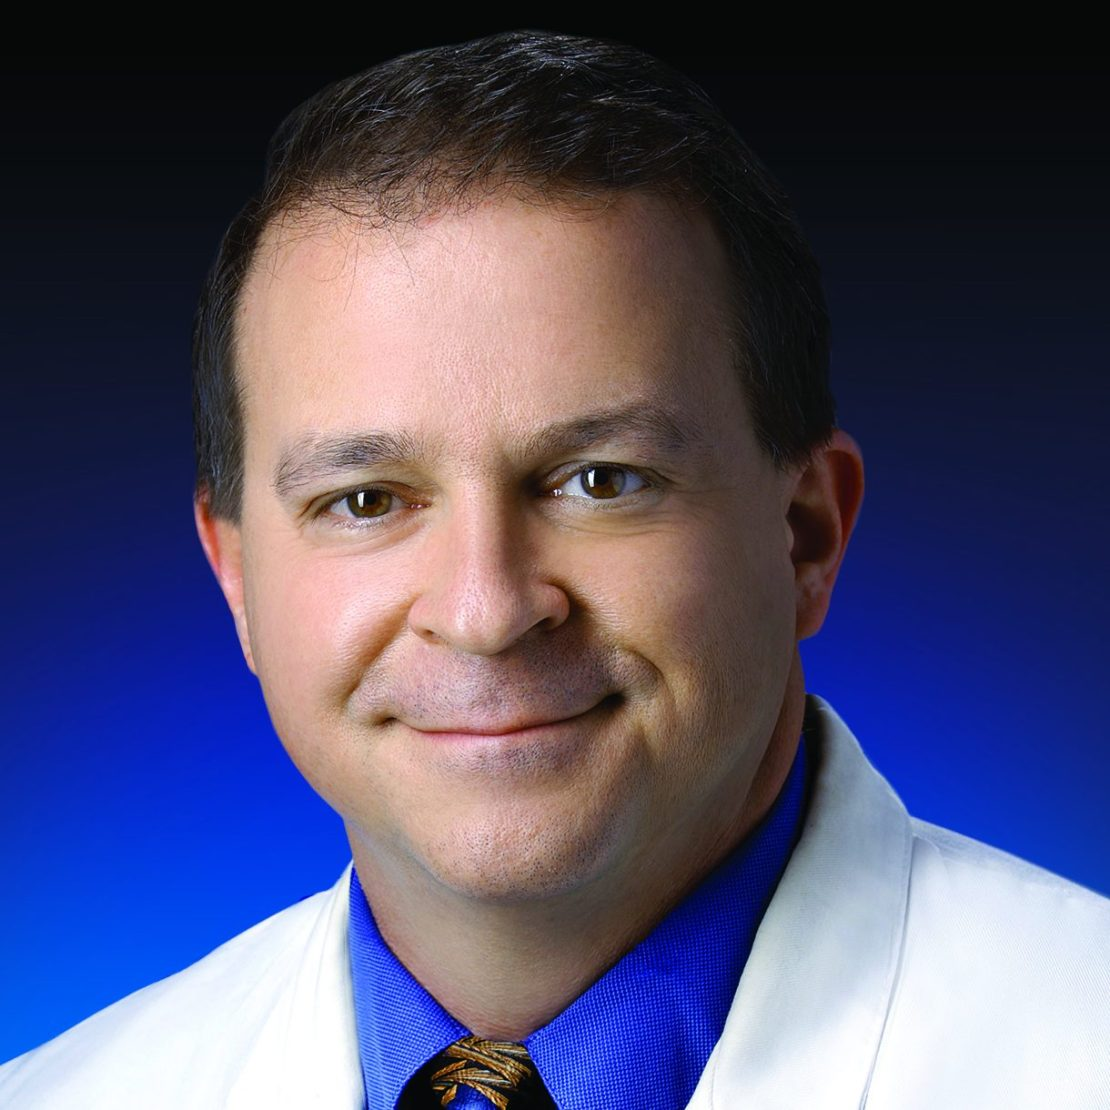 Timothy R. Shope, MD